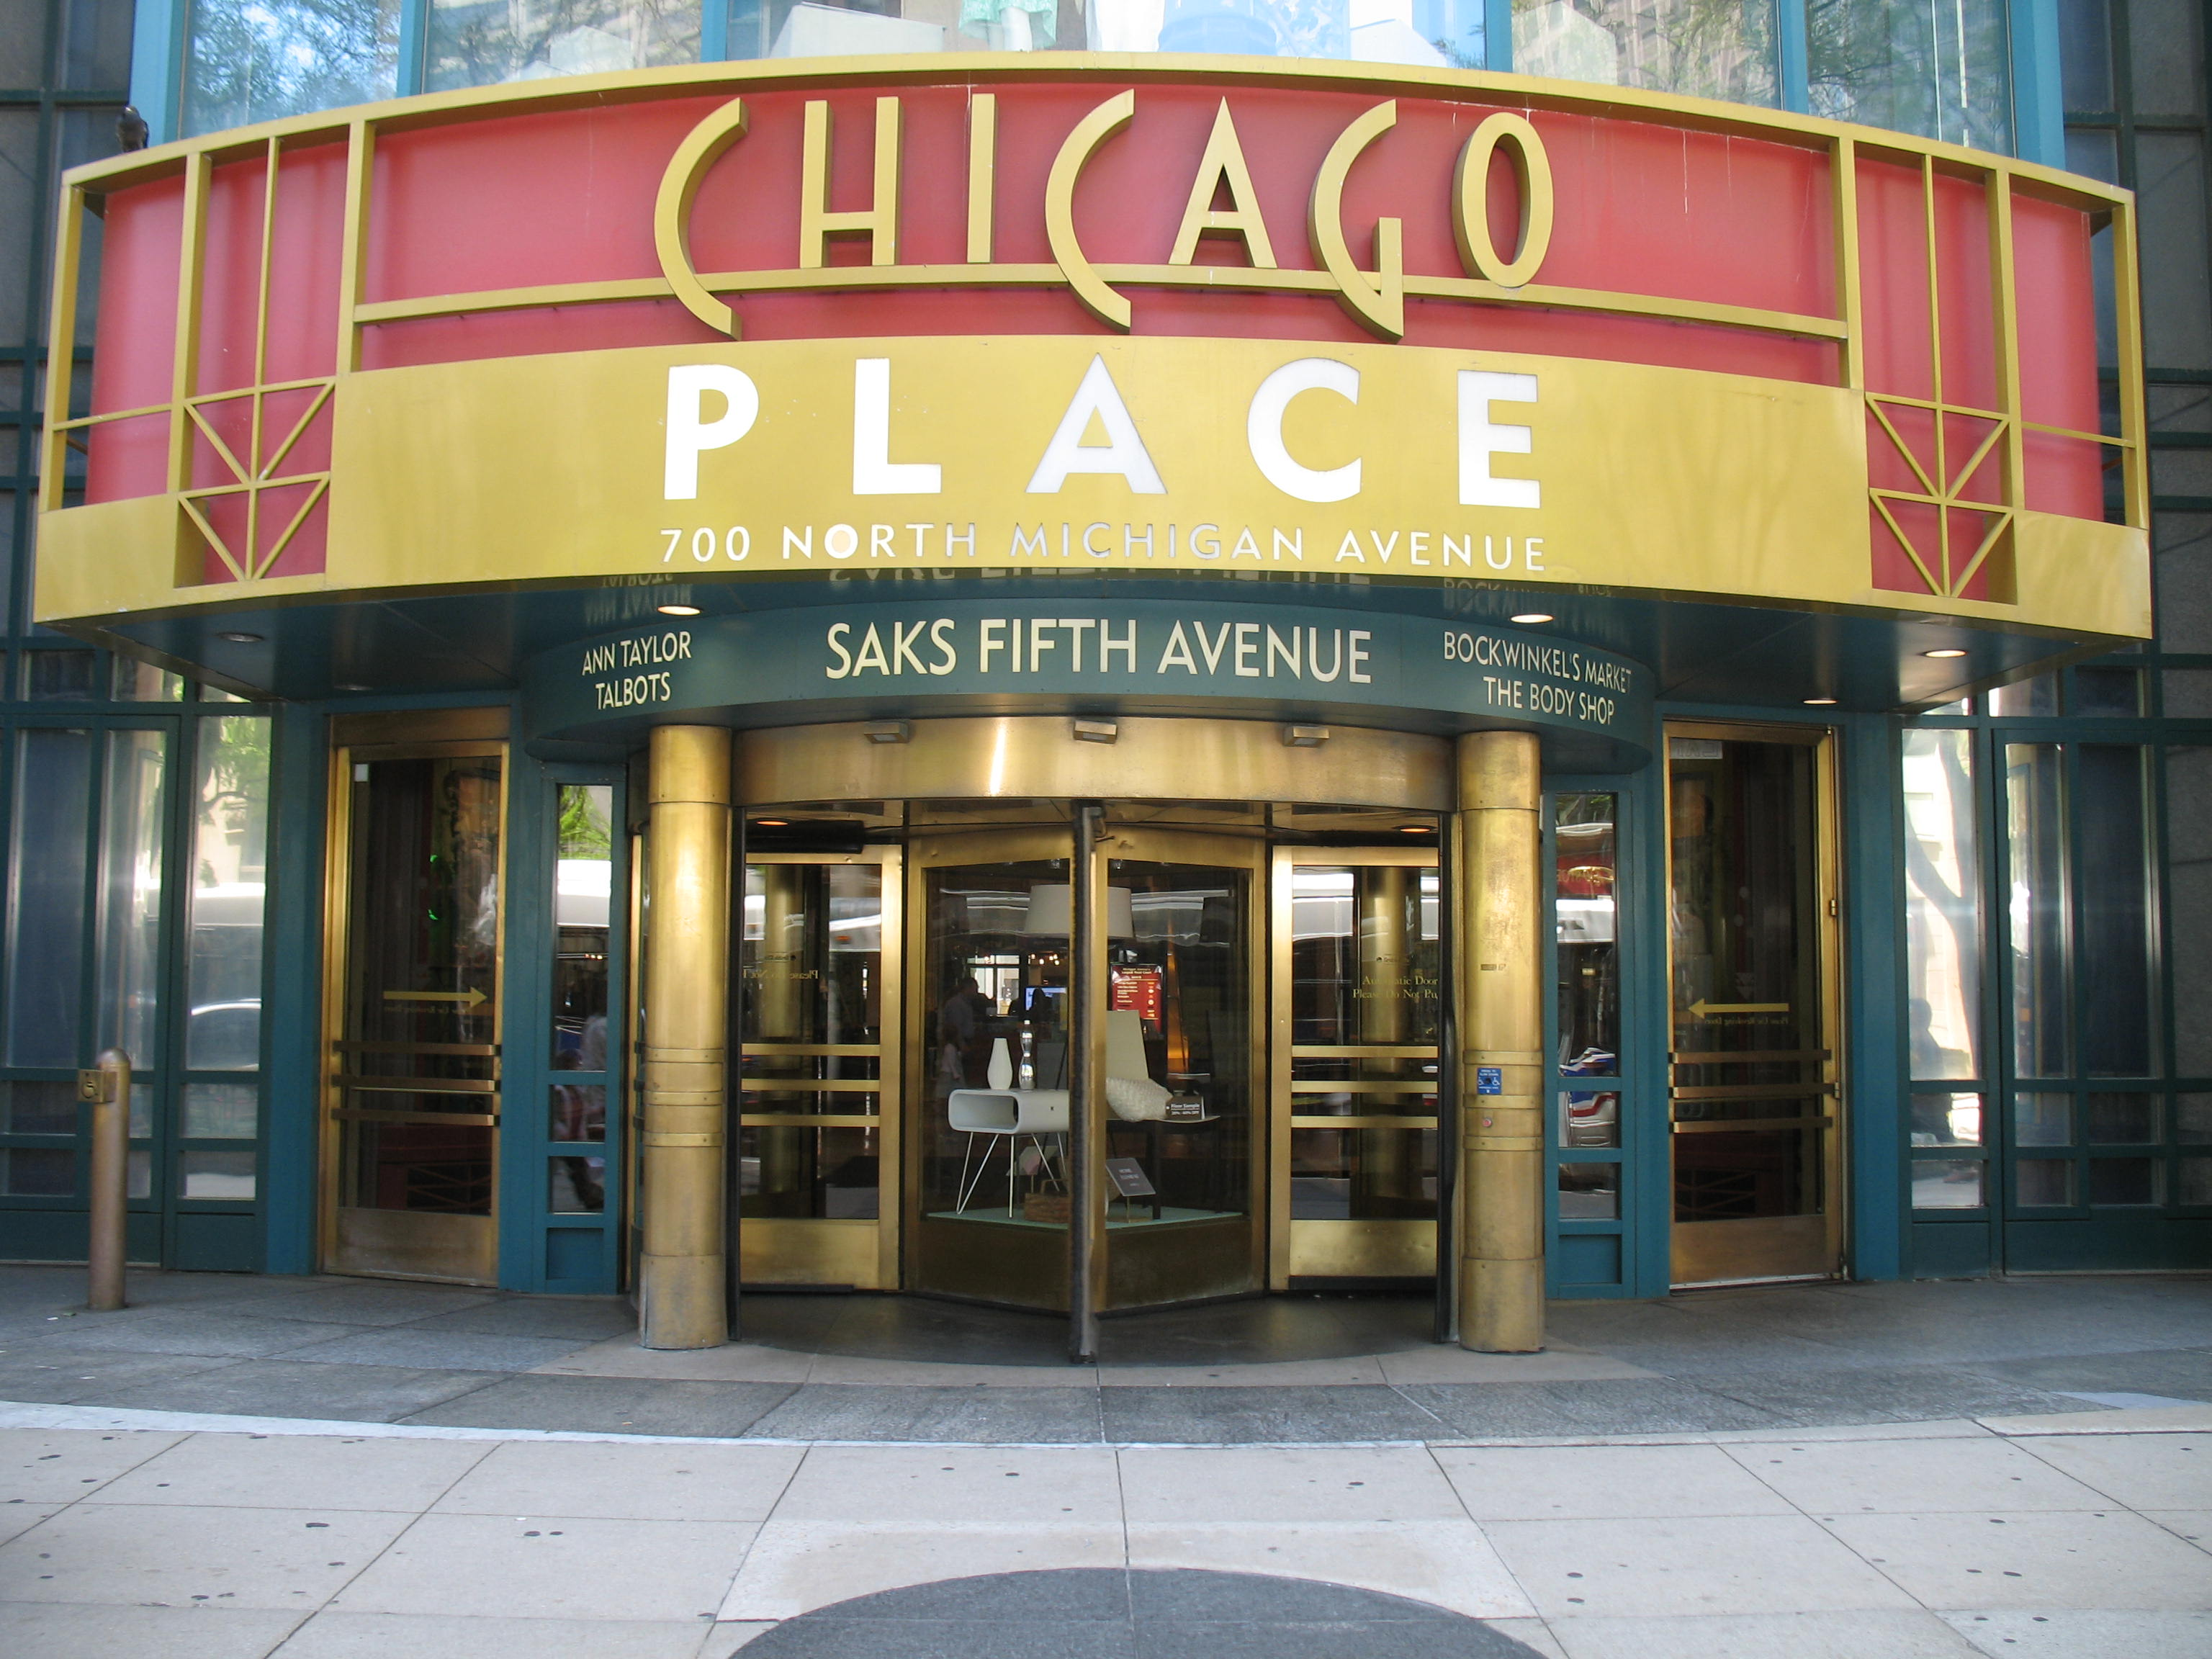 File20070513 Chicago Place Showcase Revolving Doors.JPG & File:20070513 Chicago Place Showcase Revolving Doors.JPG - Wikimedia ...